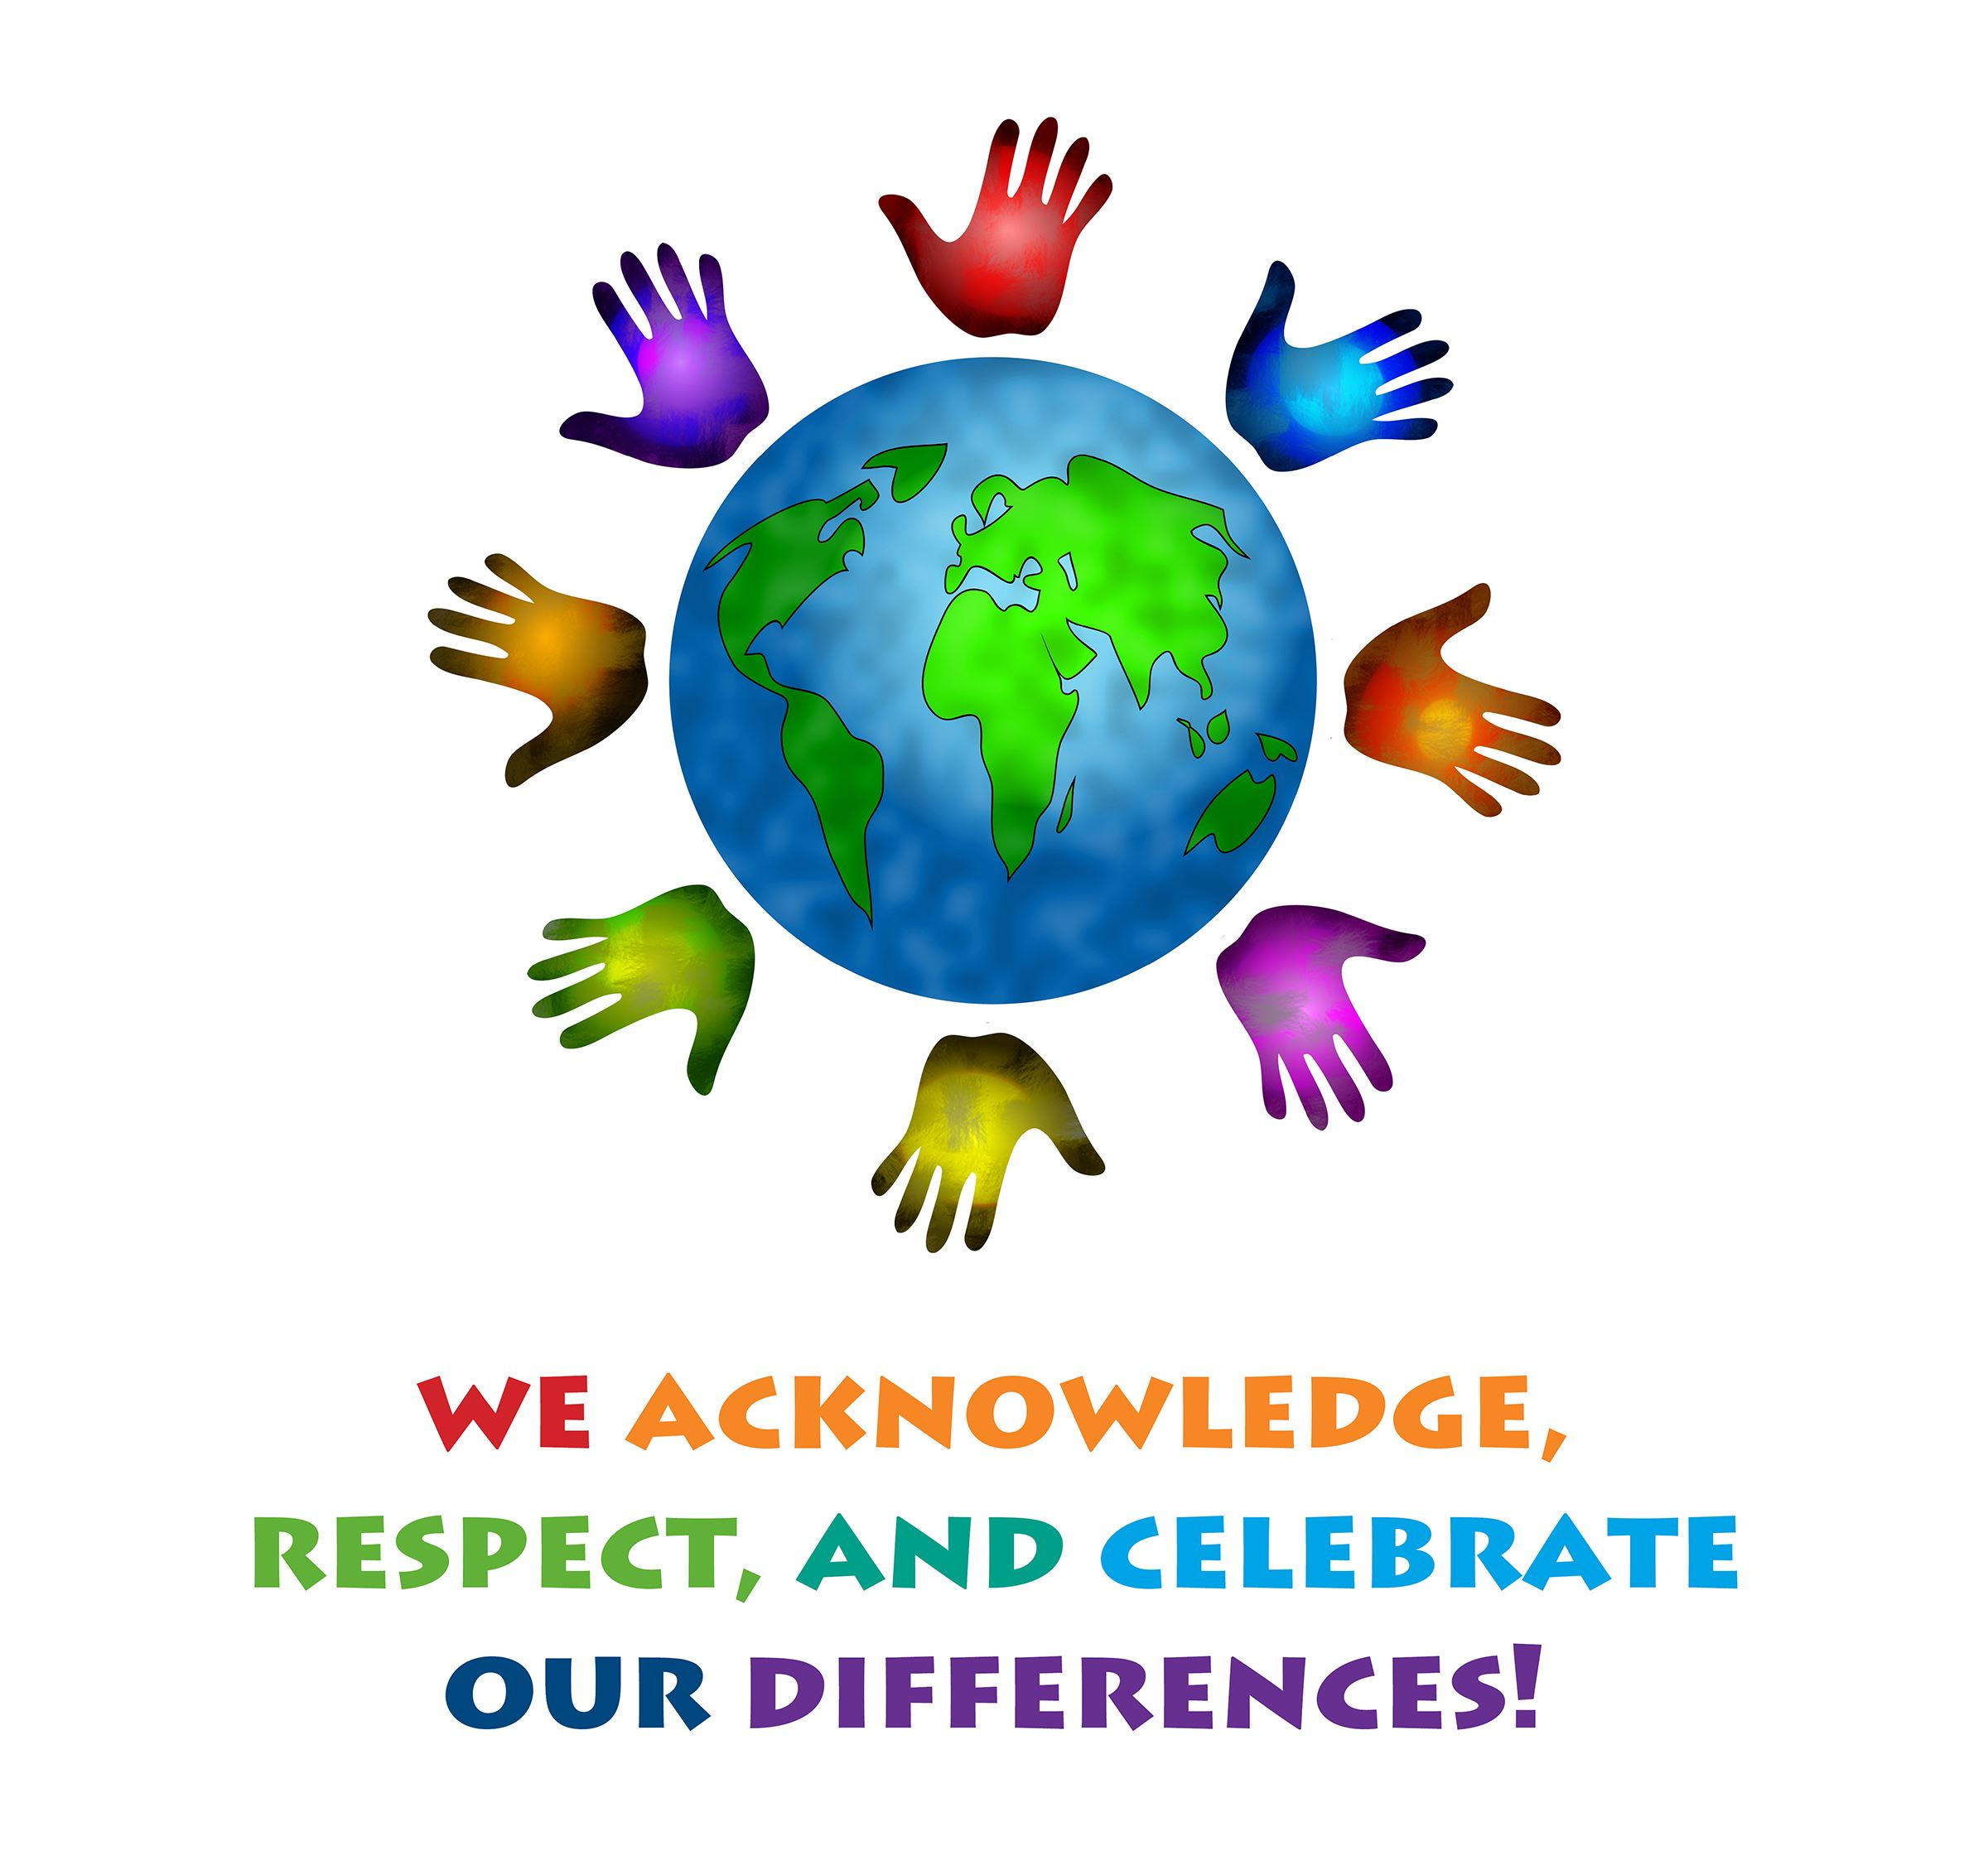 We Acknowledge, Respect, and Celebrate Our Differences